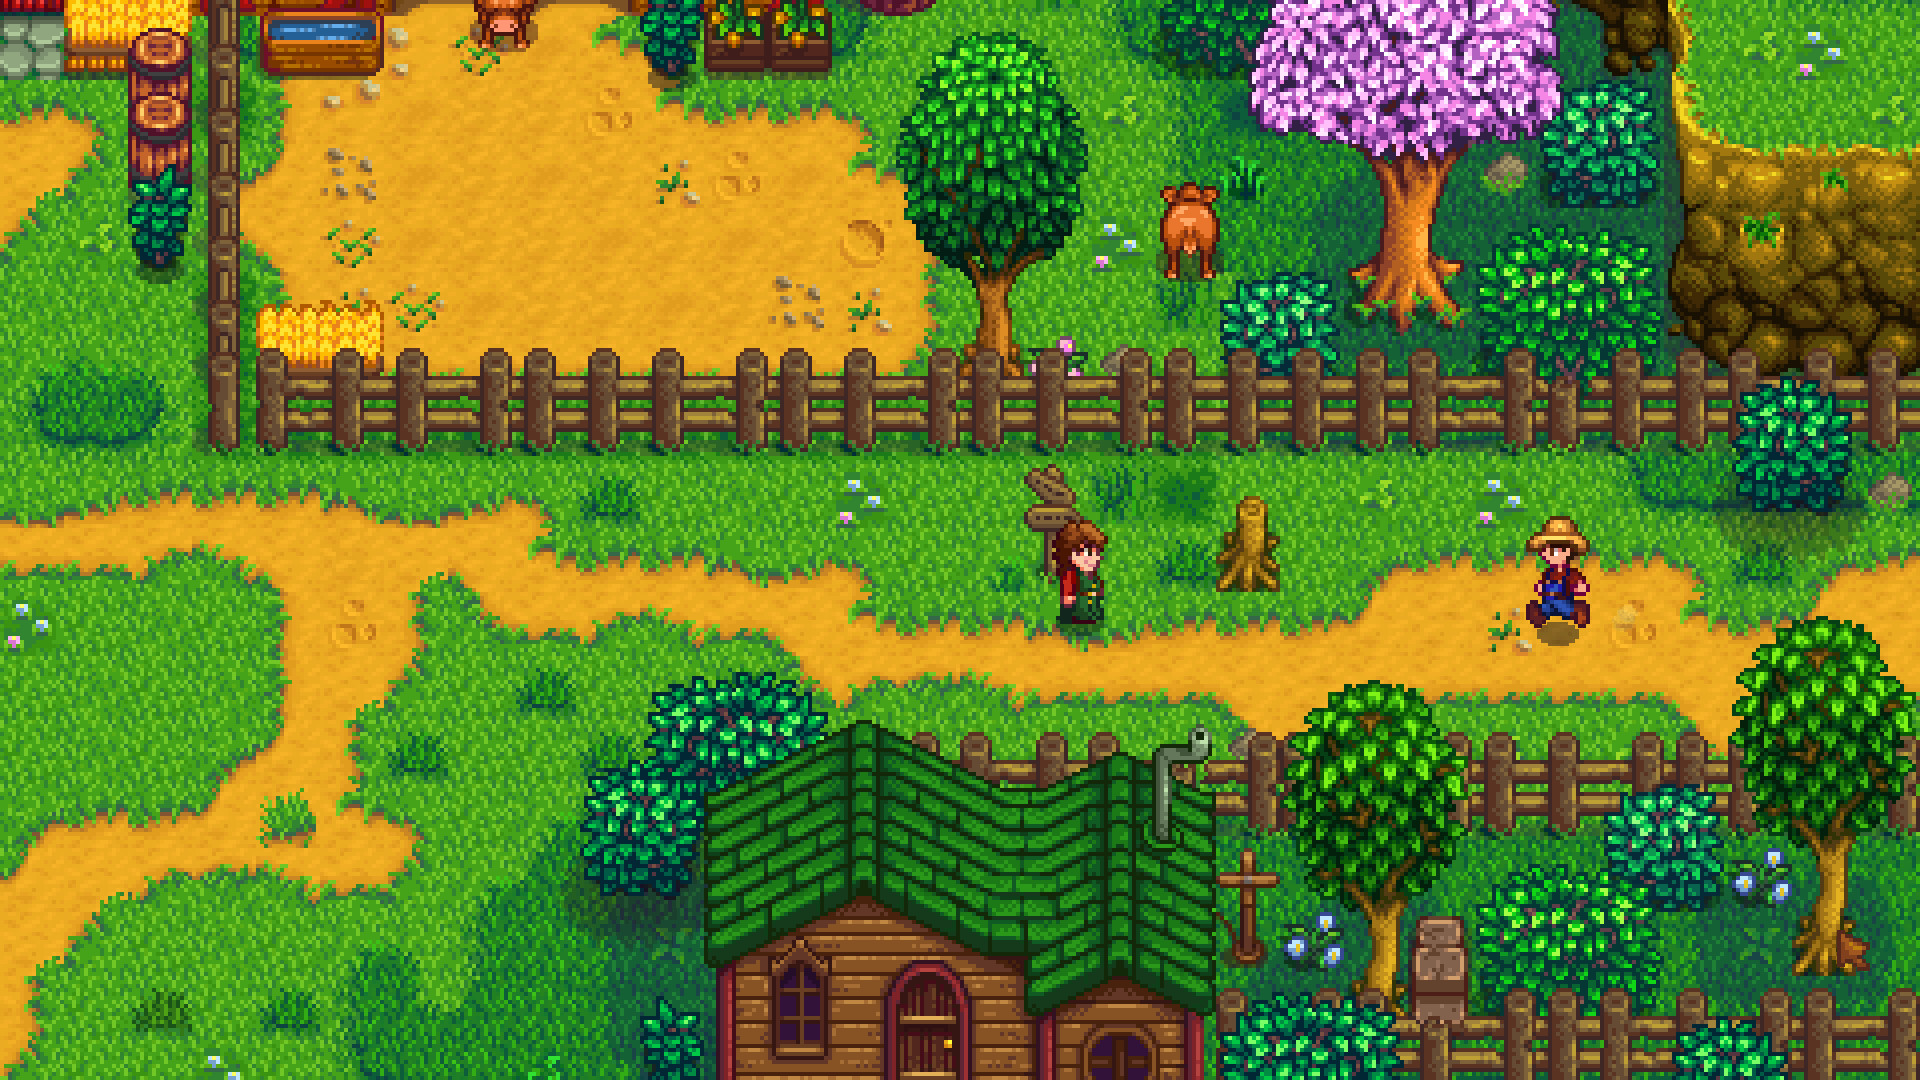 Making 'Stardew Valley' Multiplayer Sounds Like a Nightmare - VICE